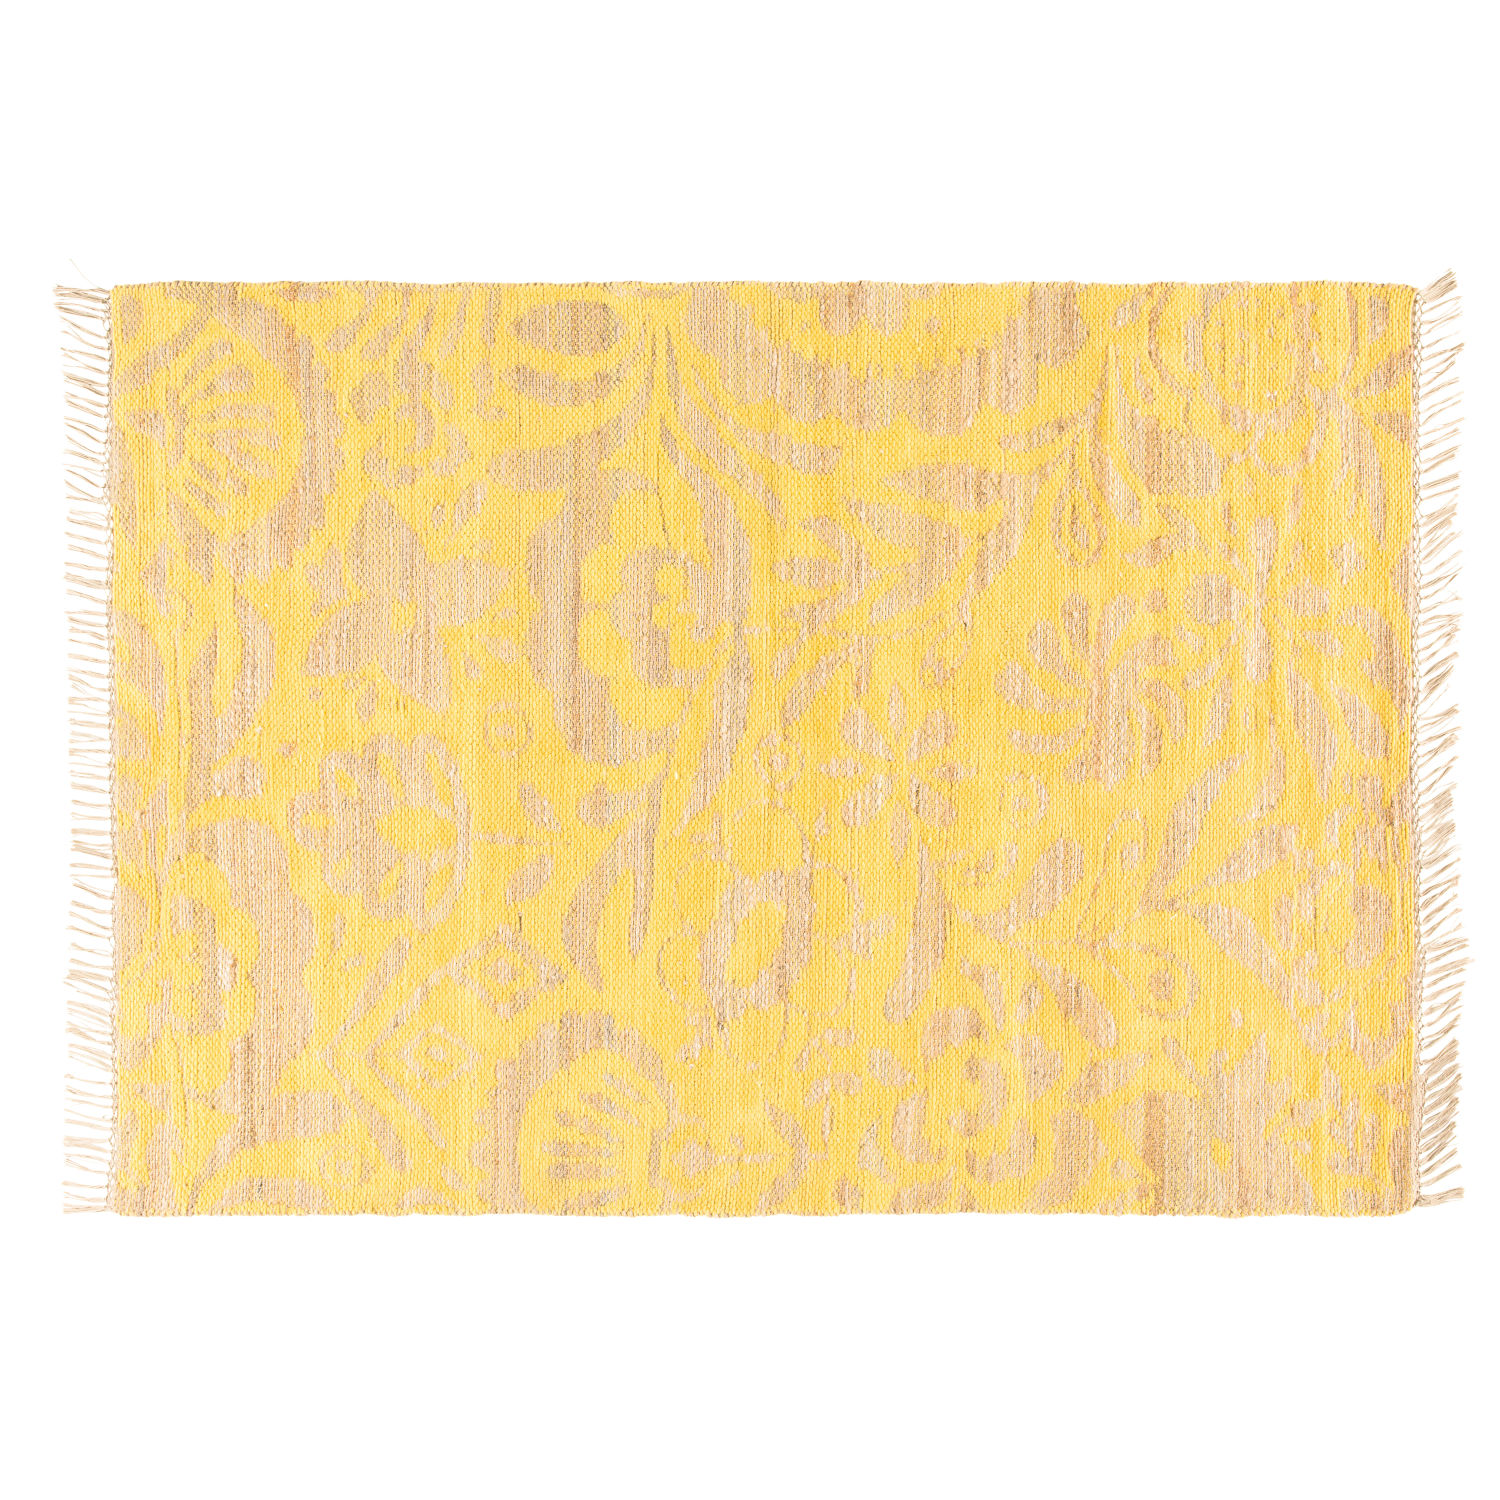 tapis en jute et coton motifs jaune moutarde 160x230 maisons du monde. Black Bedroom Furniture Sets. Home Design Ideas